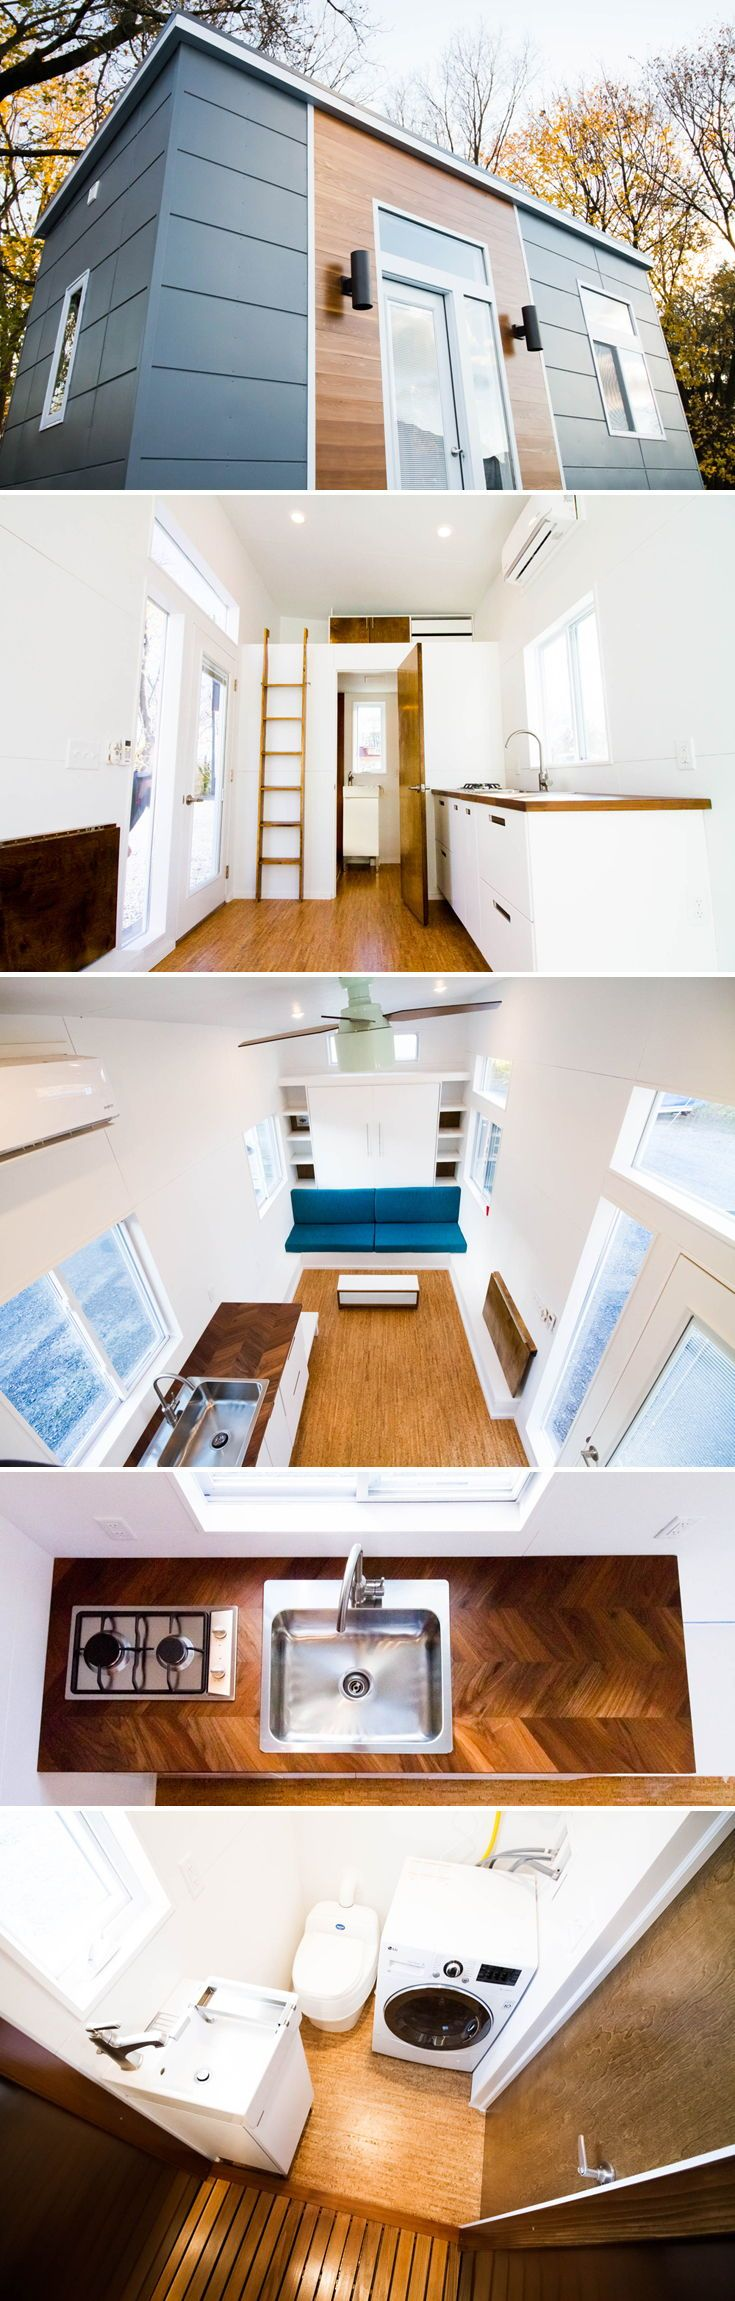 This 20′ tiny house was built by Liberation Tiny Homes for a client in Florida. The grey painted Azek panels and clear cedar wood accent provide a clean, modern theme which is carried into the house.